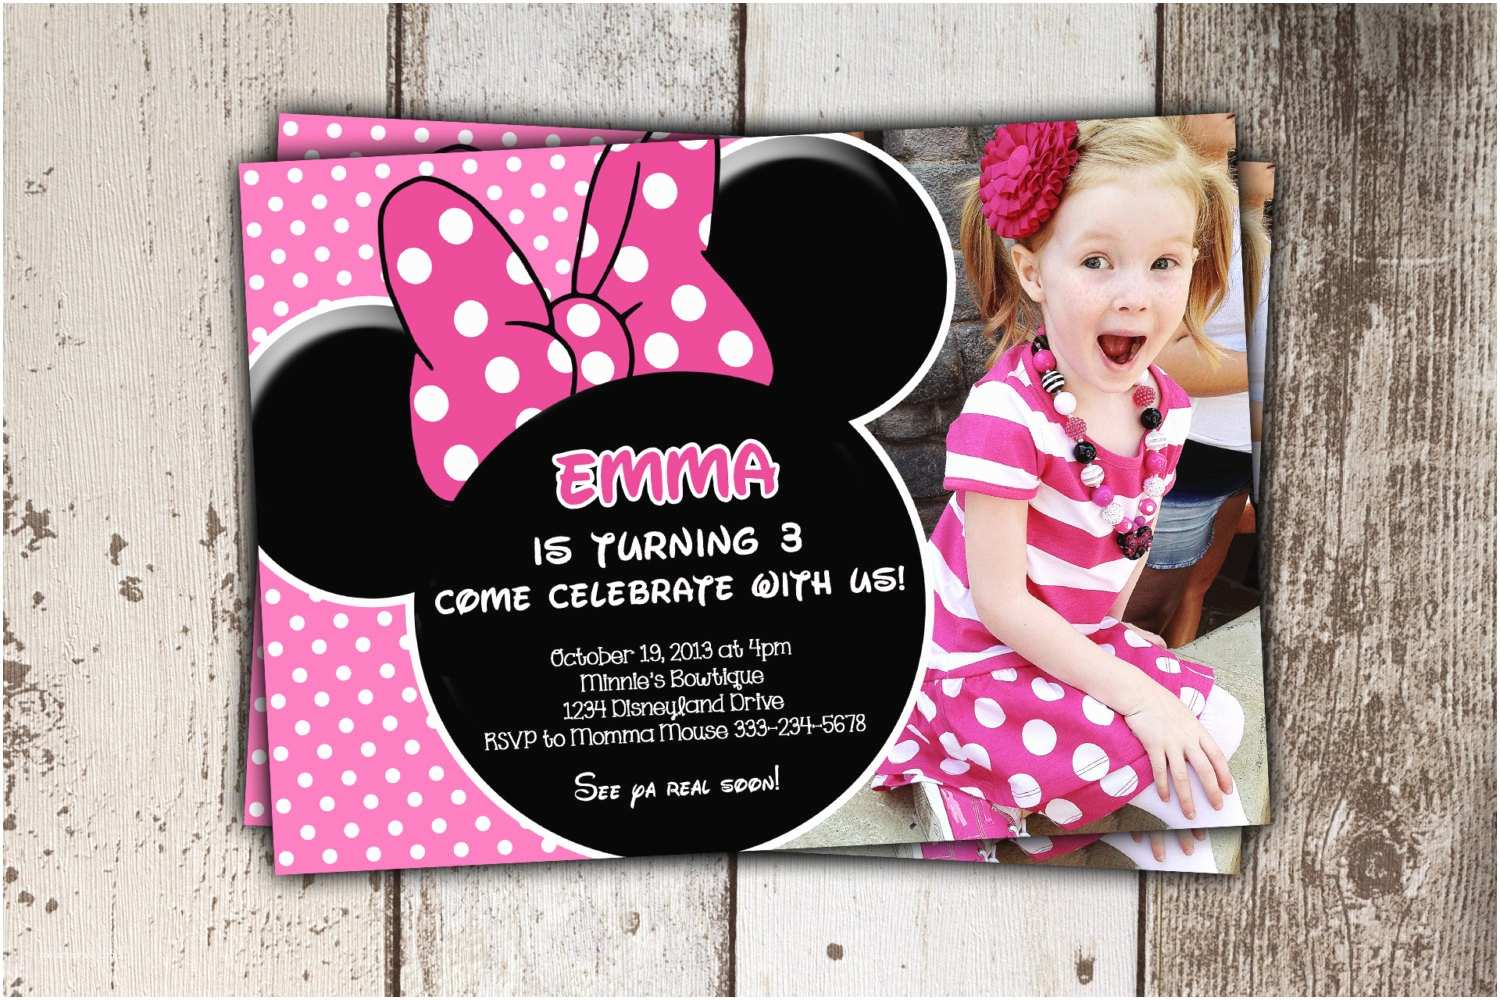 Minnie Mouse Birthday Invitations Minnie Mouse Invitations Pink Birthday Invitations with